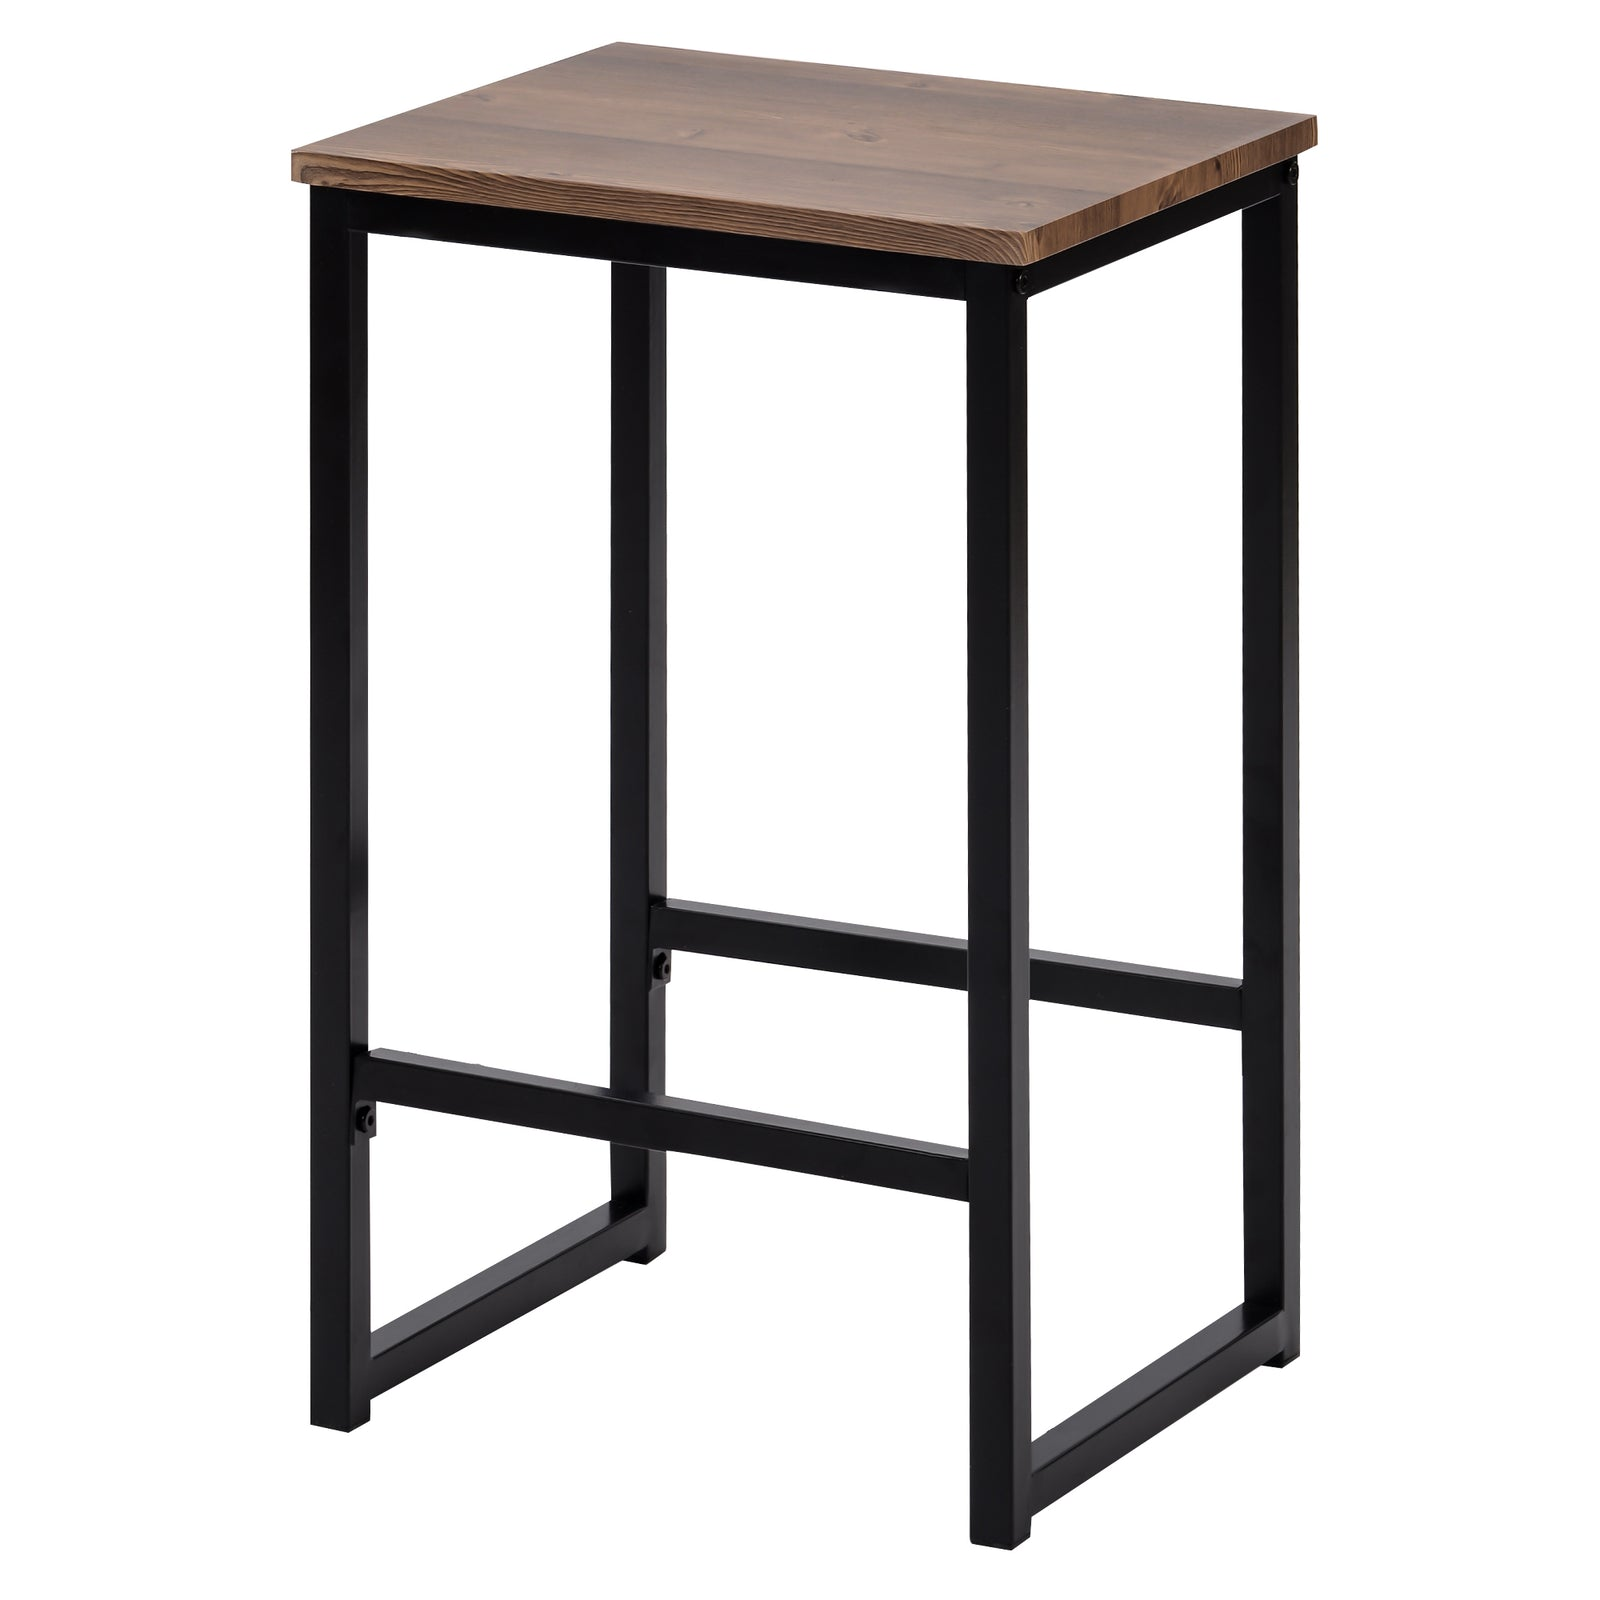 3 Counts - Modern Pub Set with Rectangular Table and Bar Stools - Black Stool